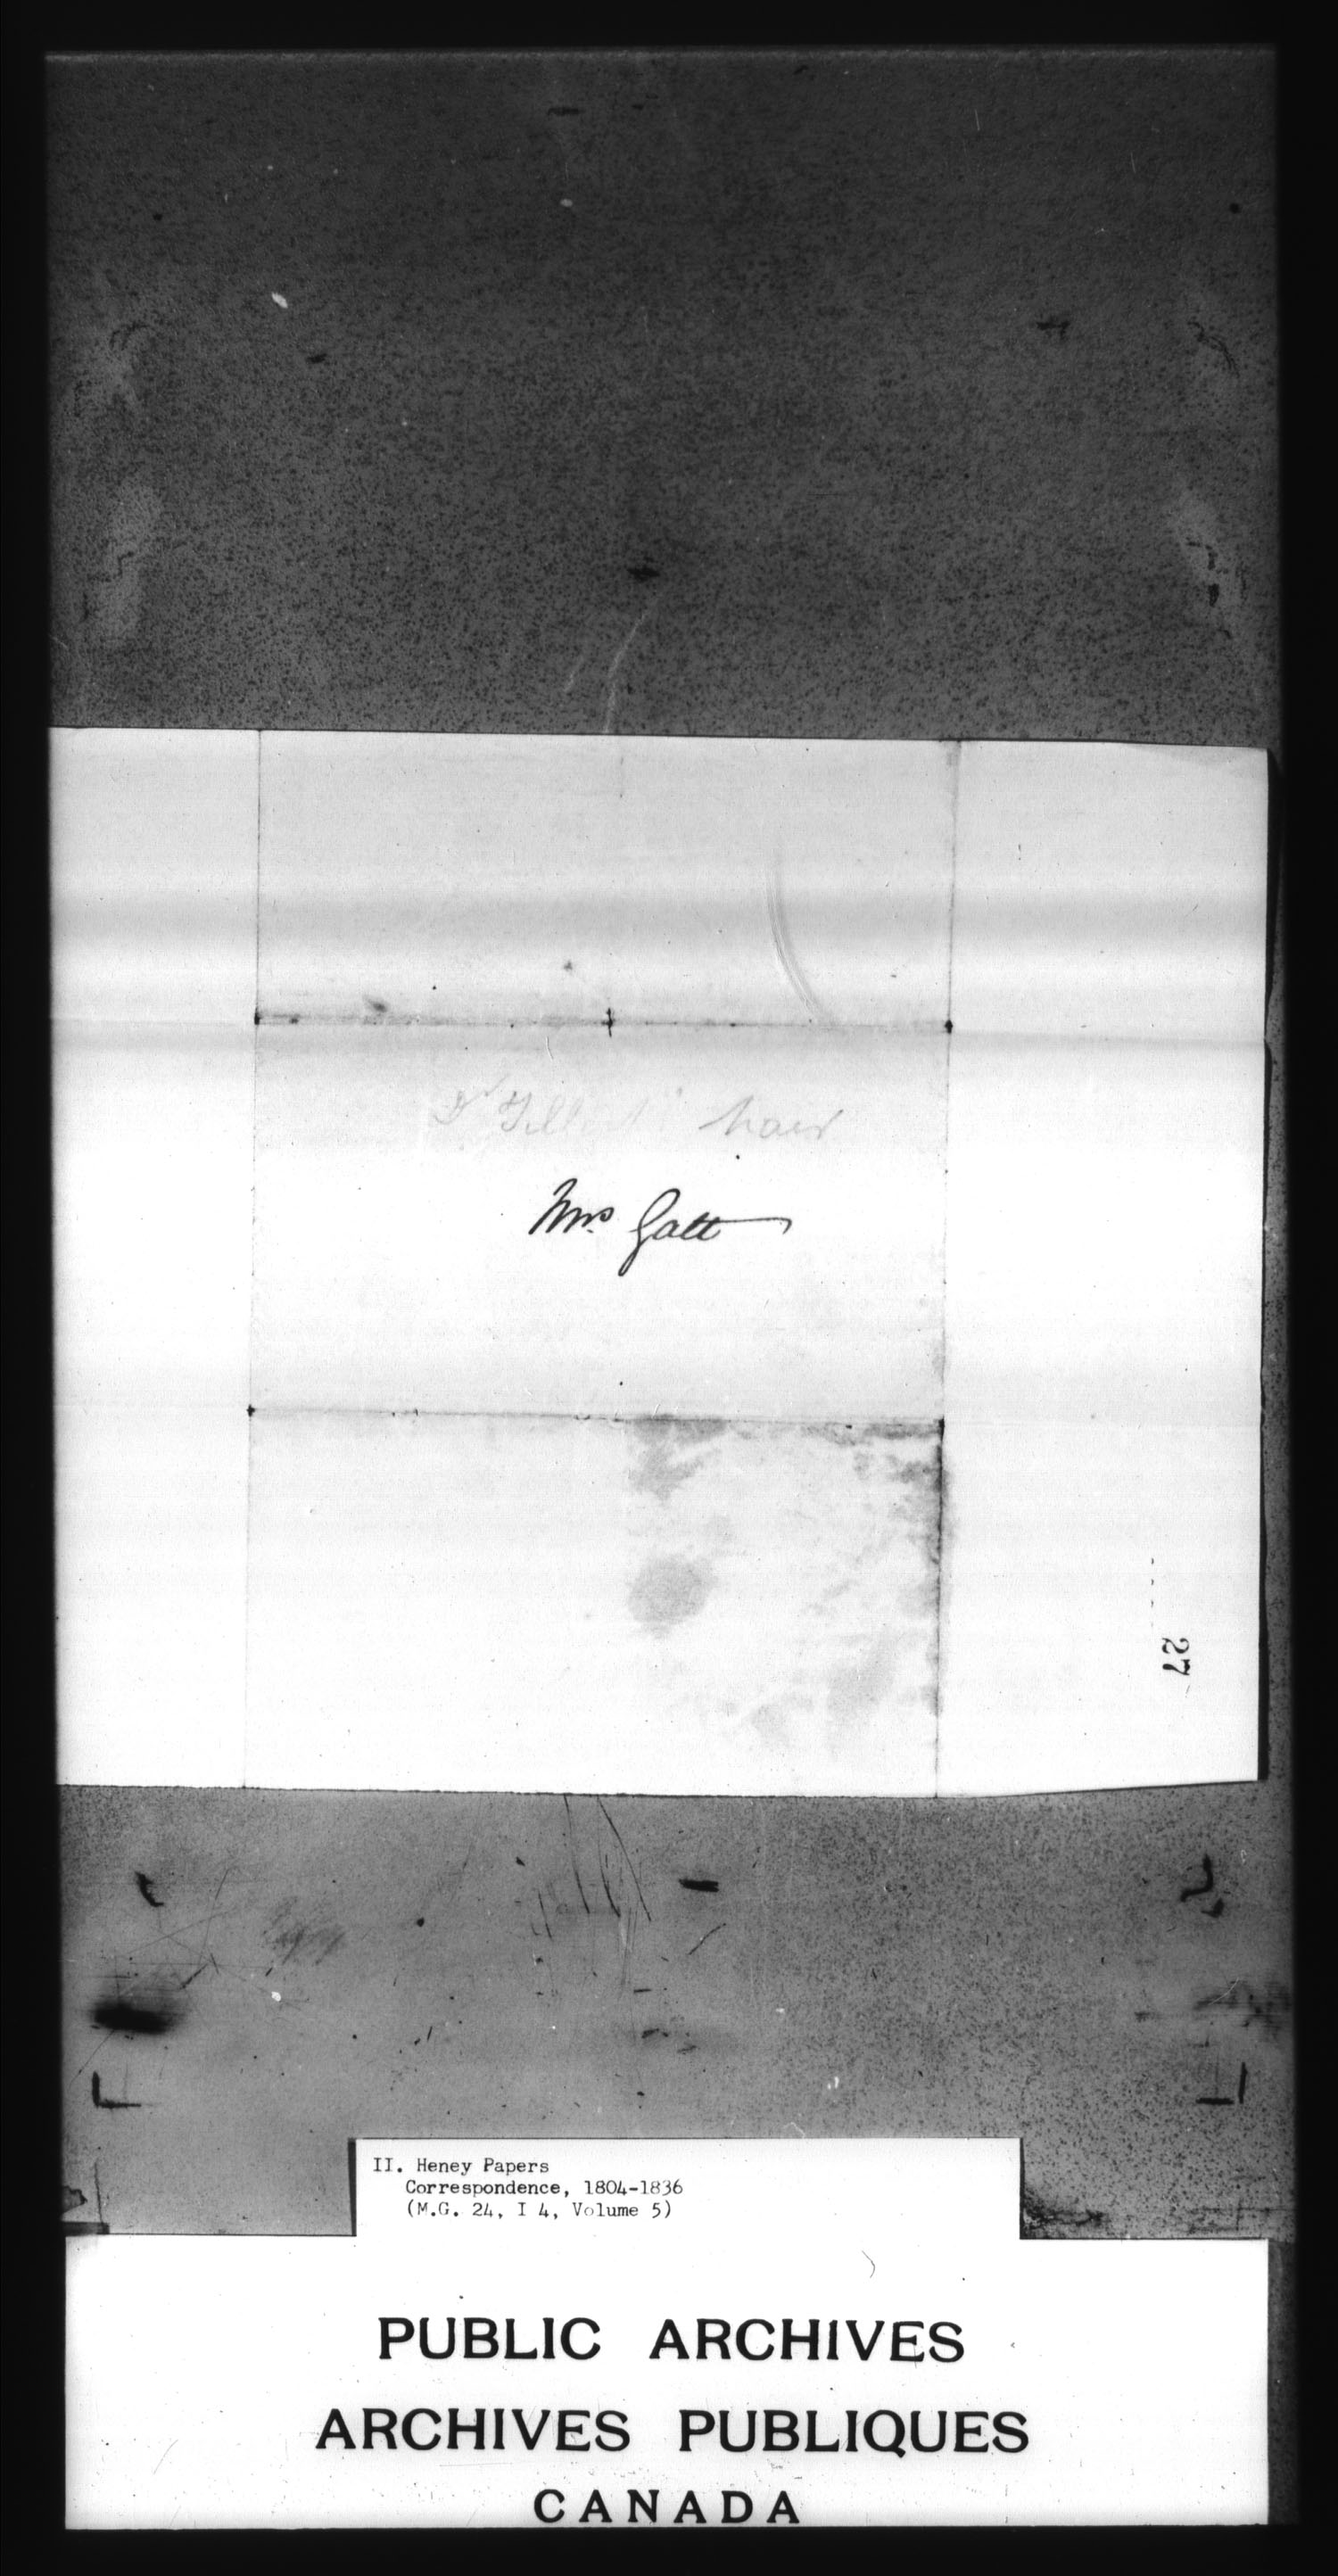 Title: War of 1812: Miscellaneous Records - Mikan Number:  - Microform: c-3898